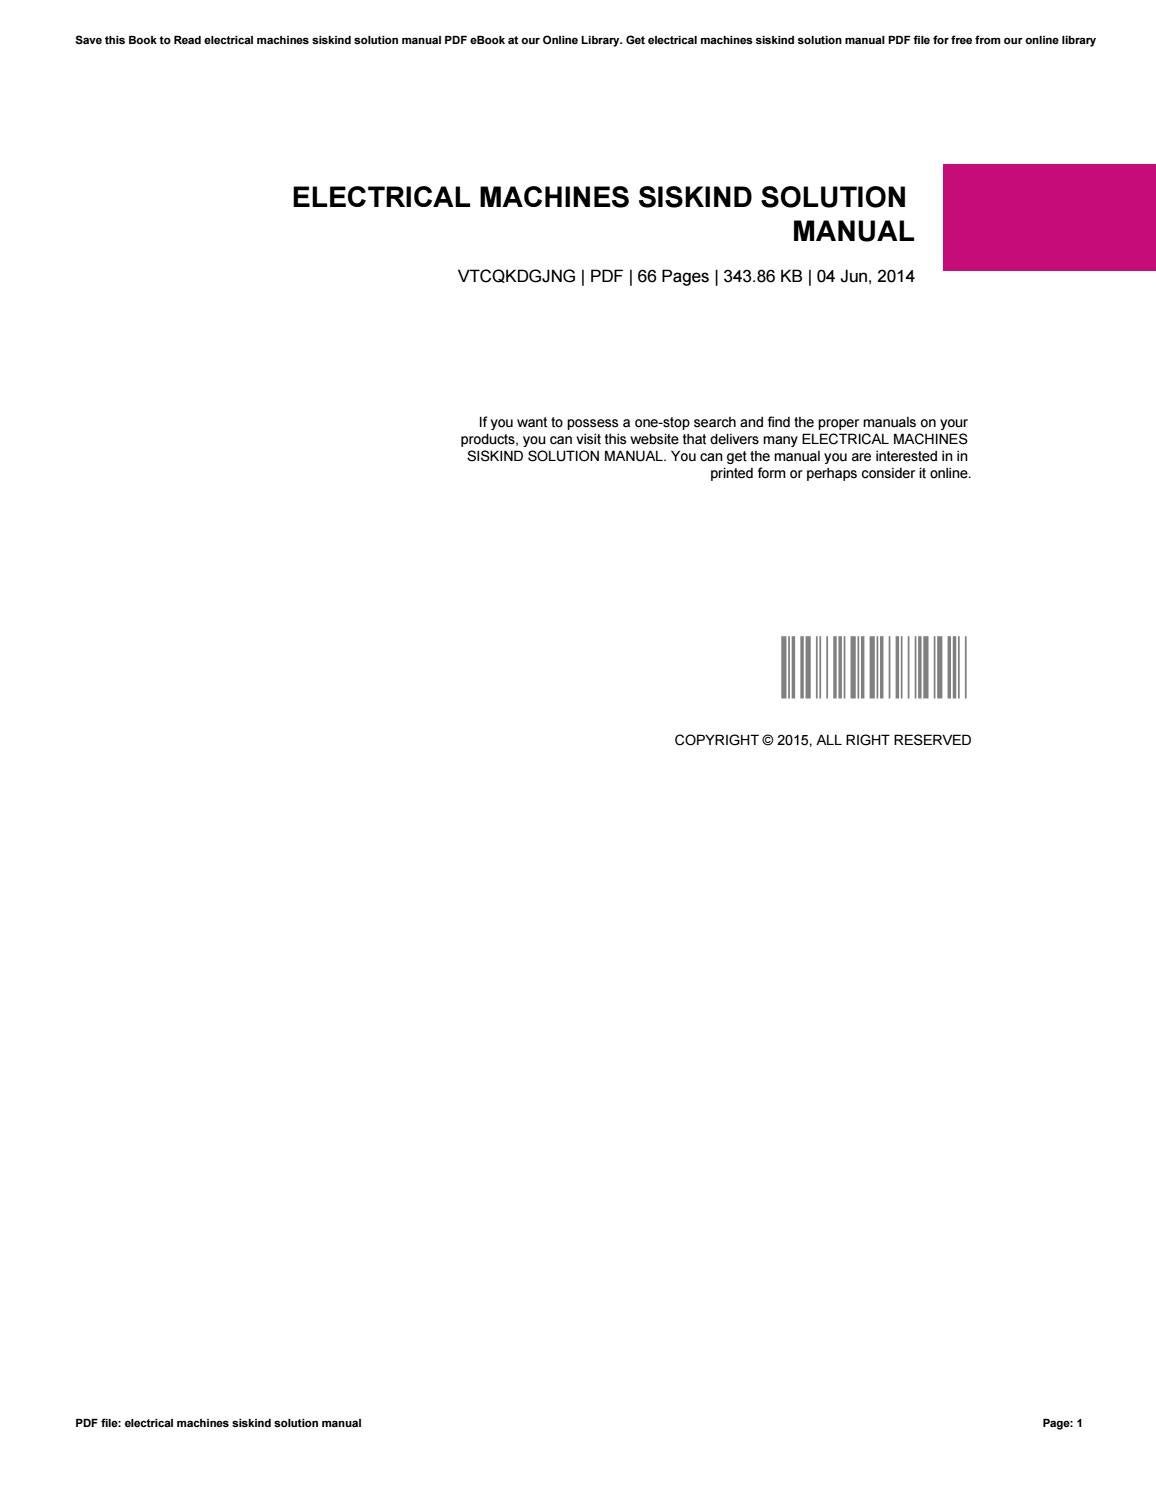 electrical machines by charles siskind solution manual